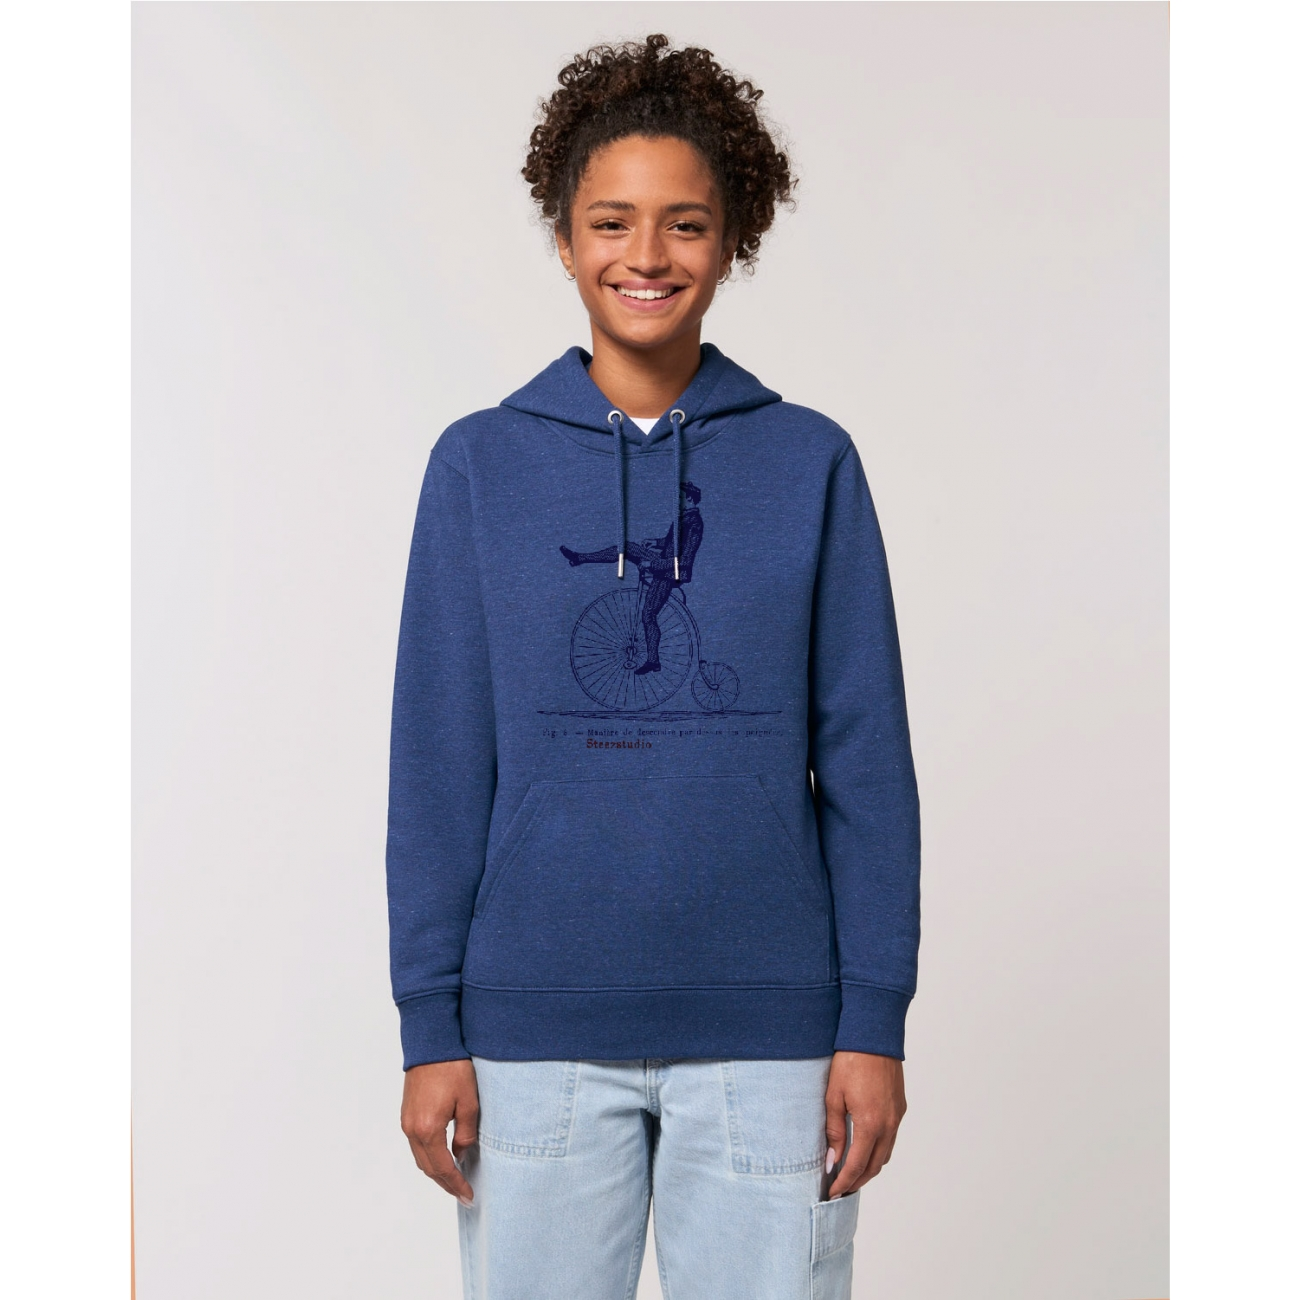 https://tee-shirt-bio.com/10331-thickbox_default/sweat-shirt-femme-capuche-epais-et-interieur-doux-coton-bio-beau-bleu-chine.jpg